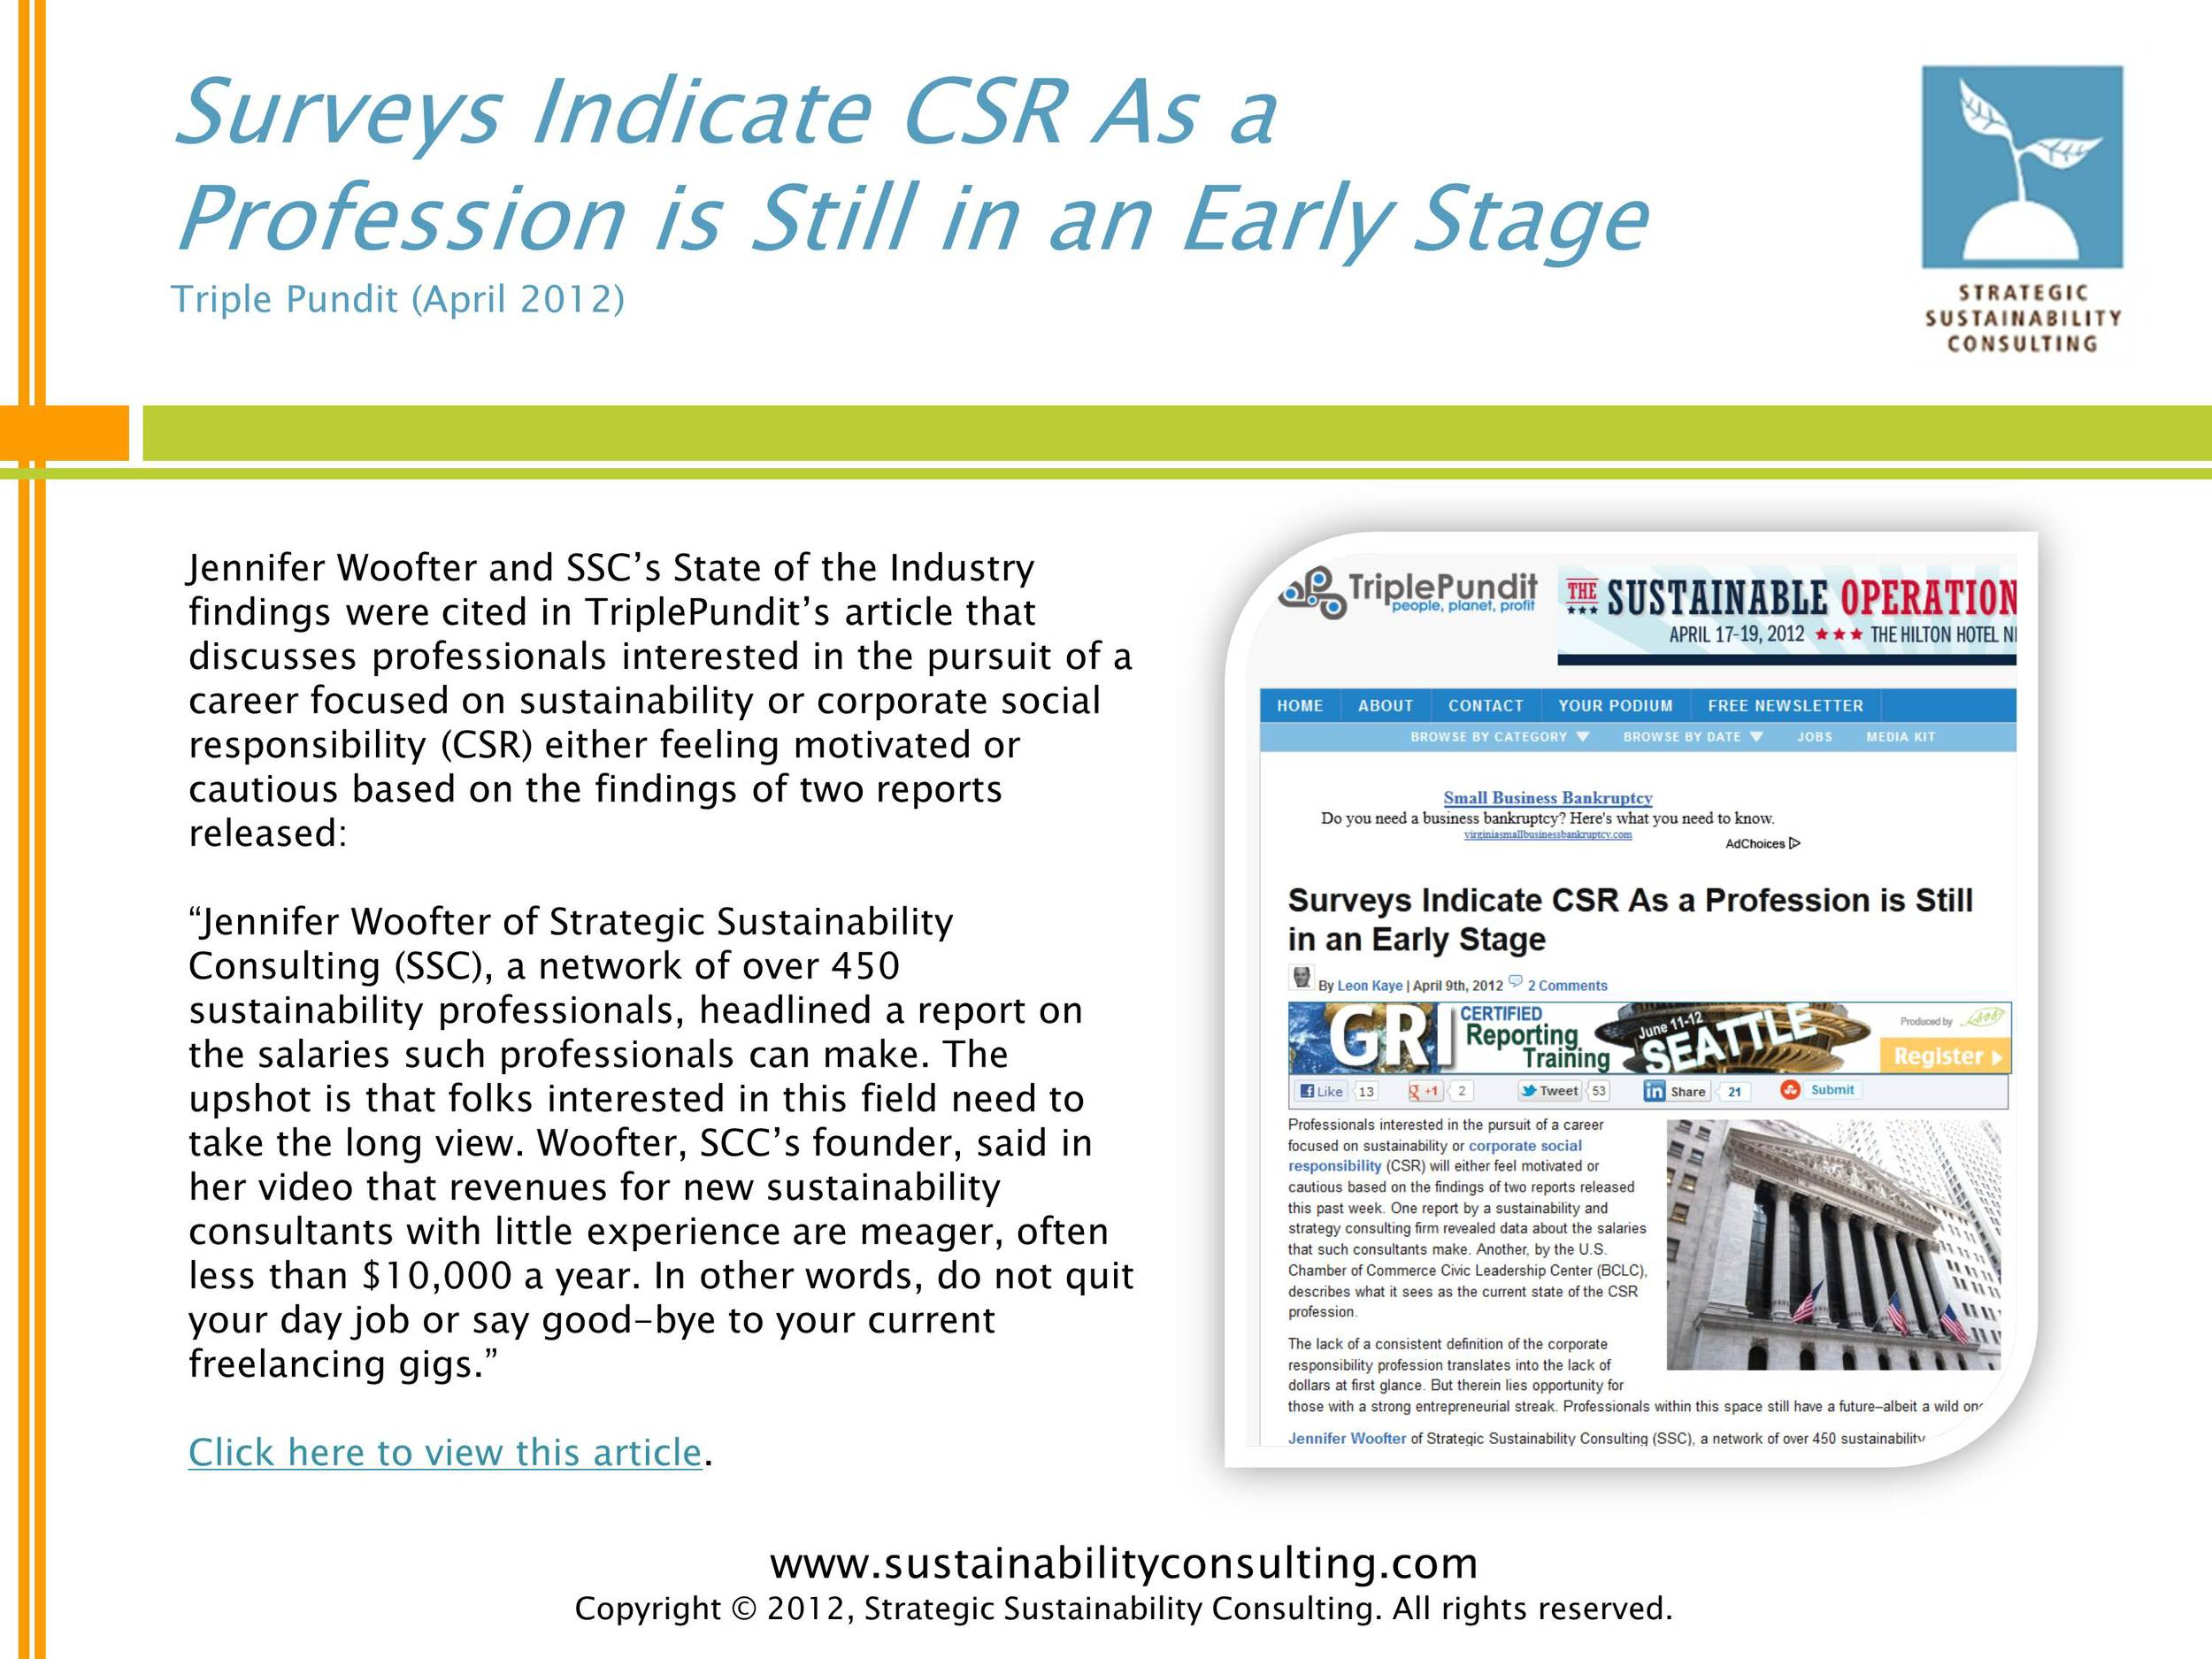 Surveys Indicate CSR As a Profession is Still in an Early Stage